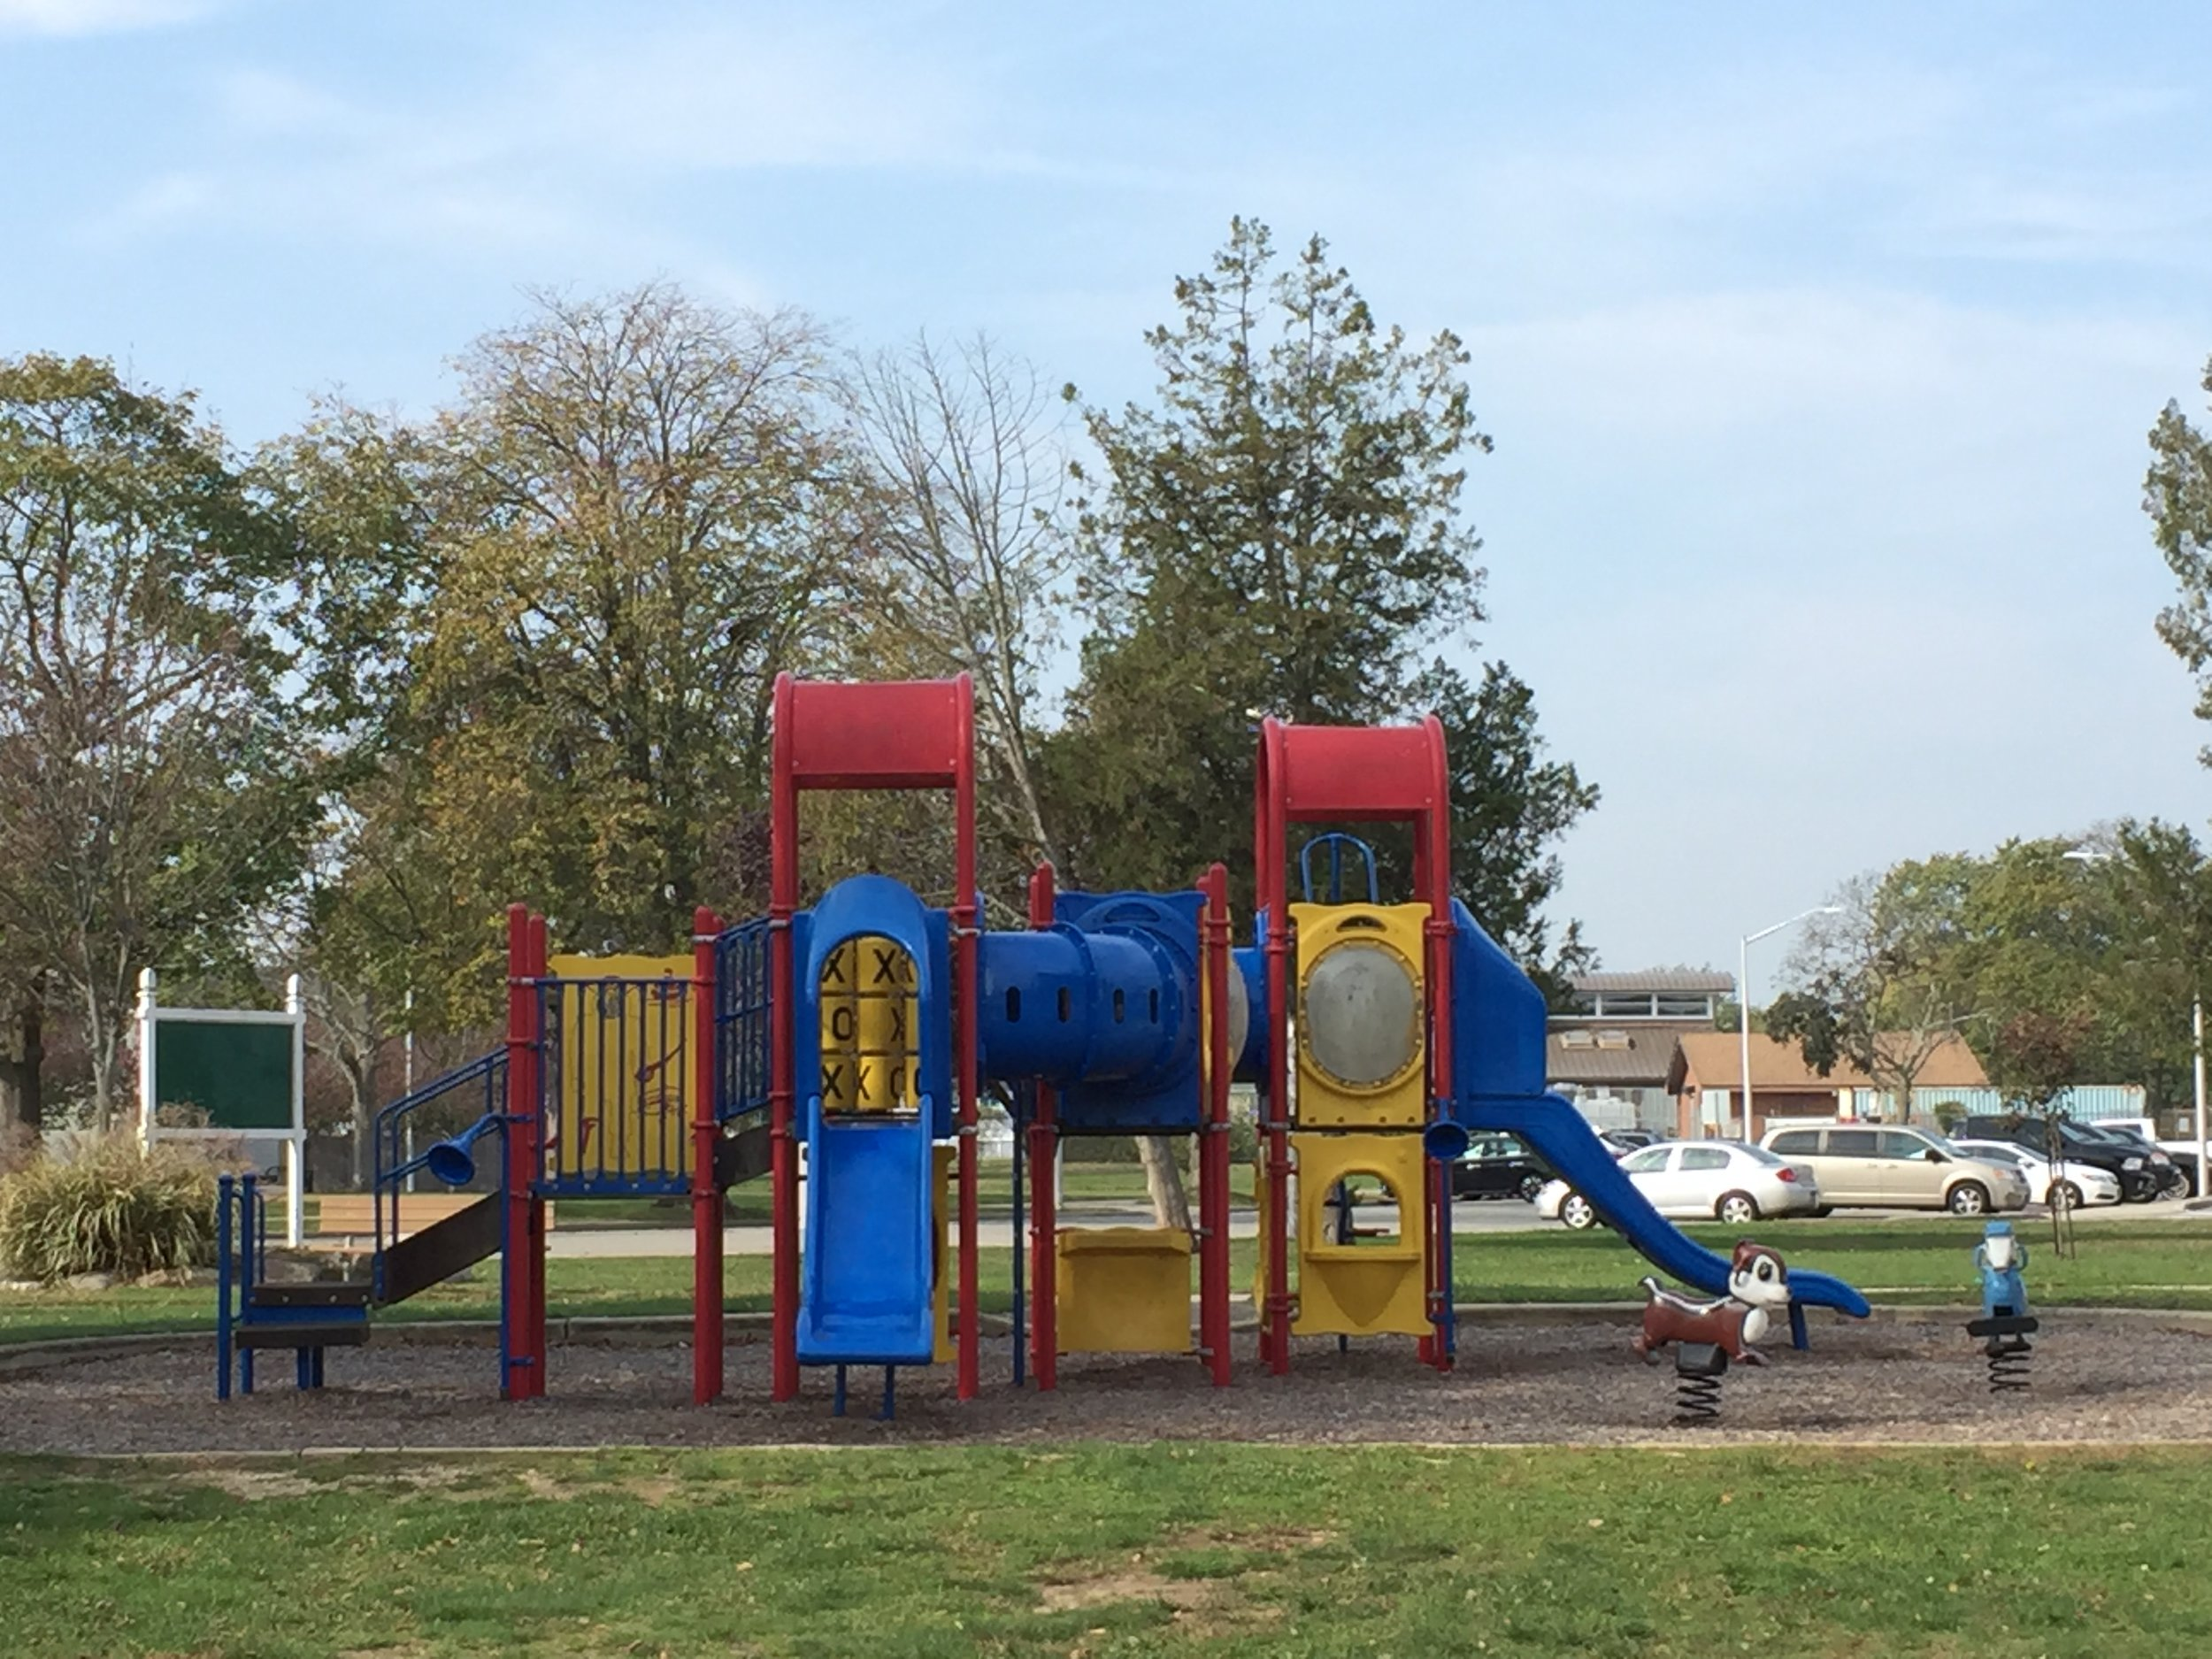 Playground at Acorn Lane Park